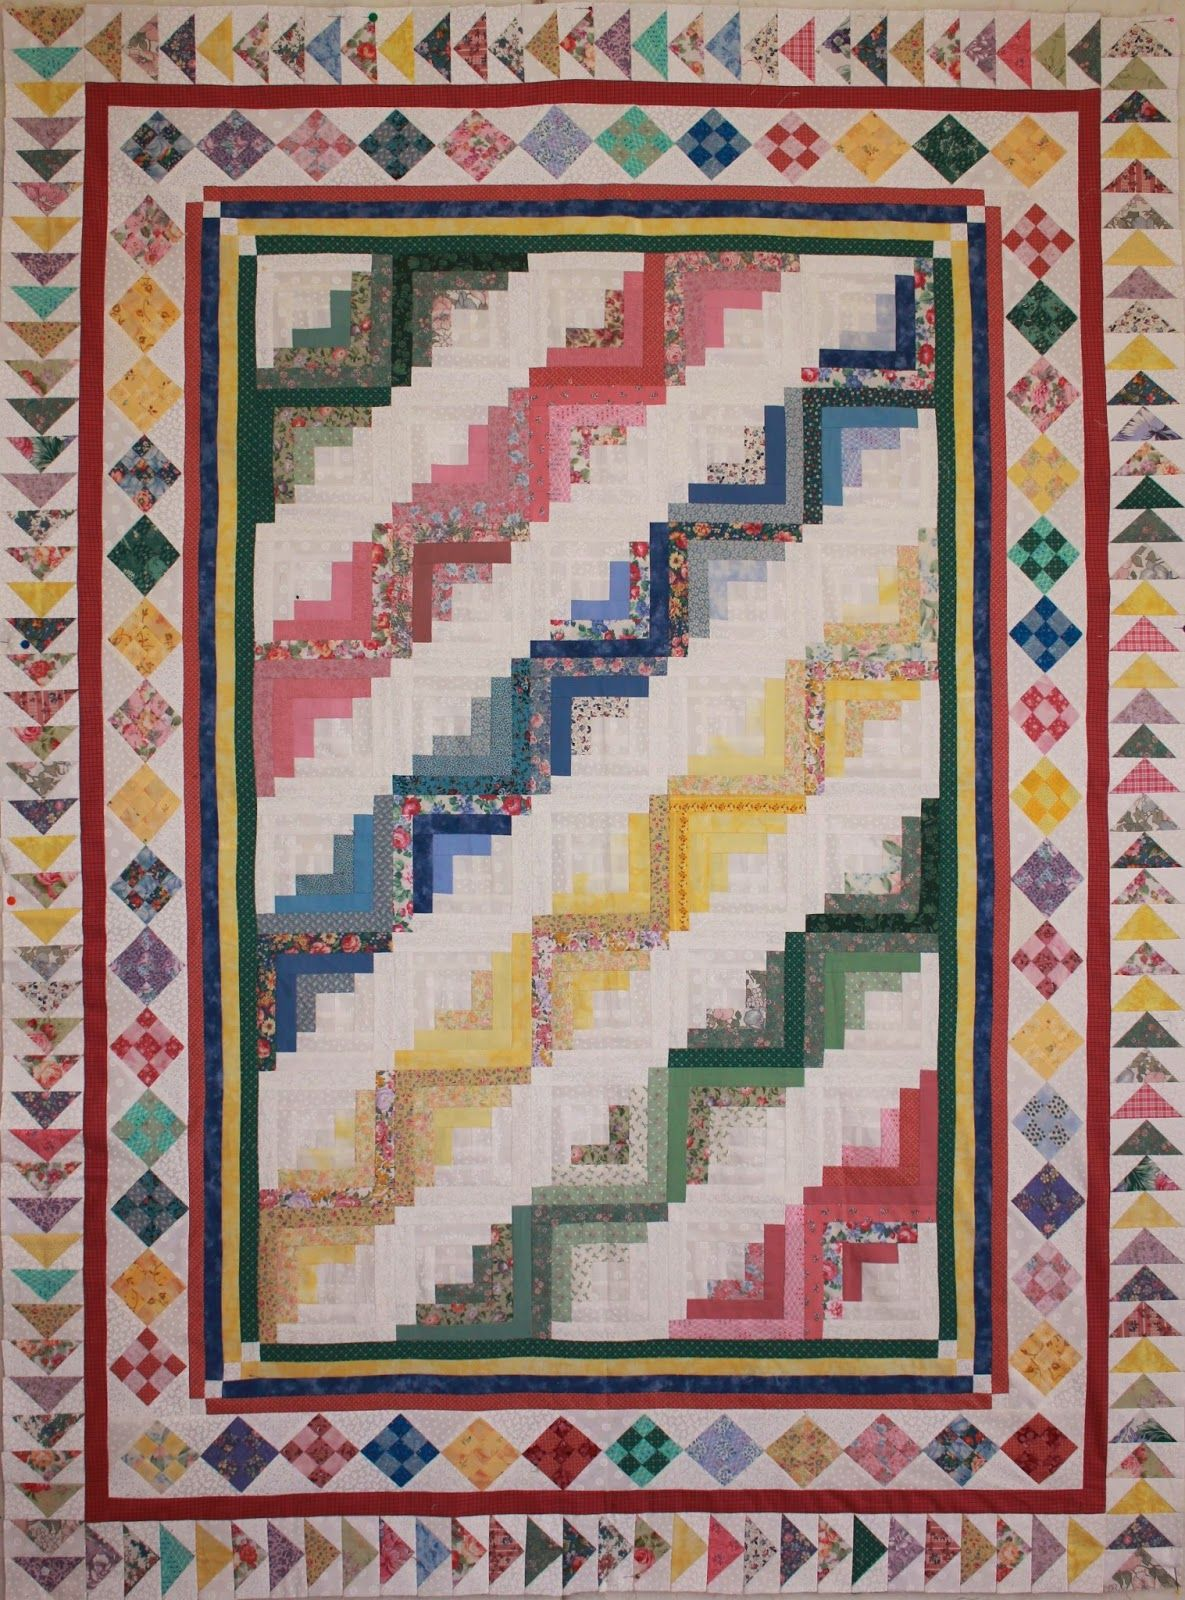 Silly Goose Quilts: Finishes Love the borders she added they ... : silly goose quilt pattern - Adamdwight.com